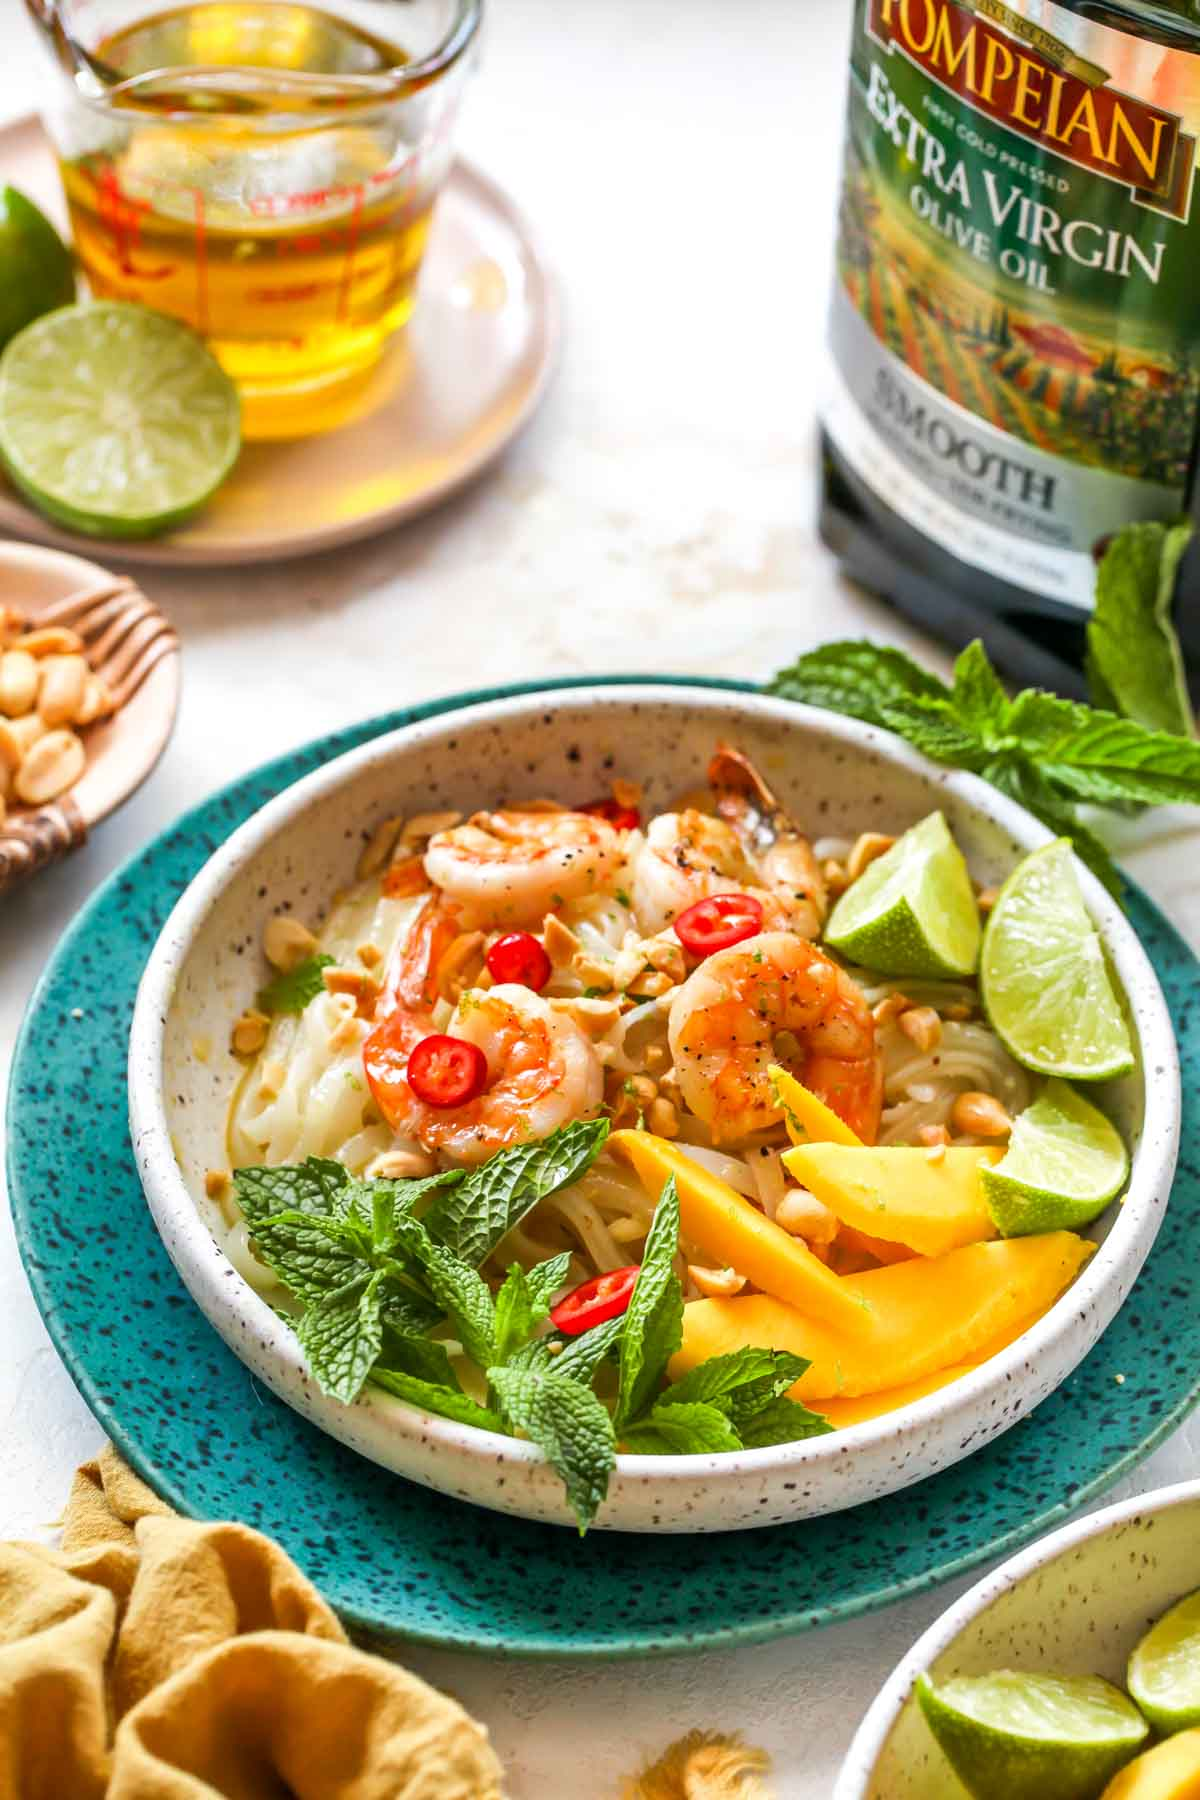 Seared shrimp and noodles in a white bowl garnished with mint and mango